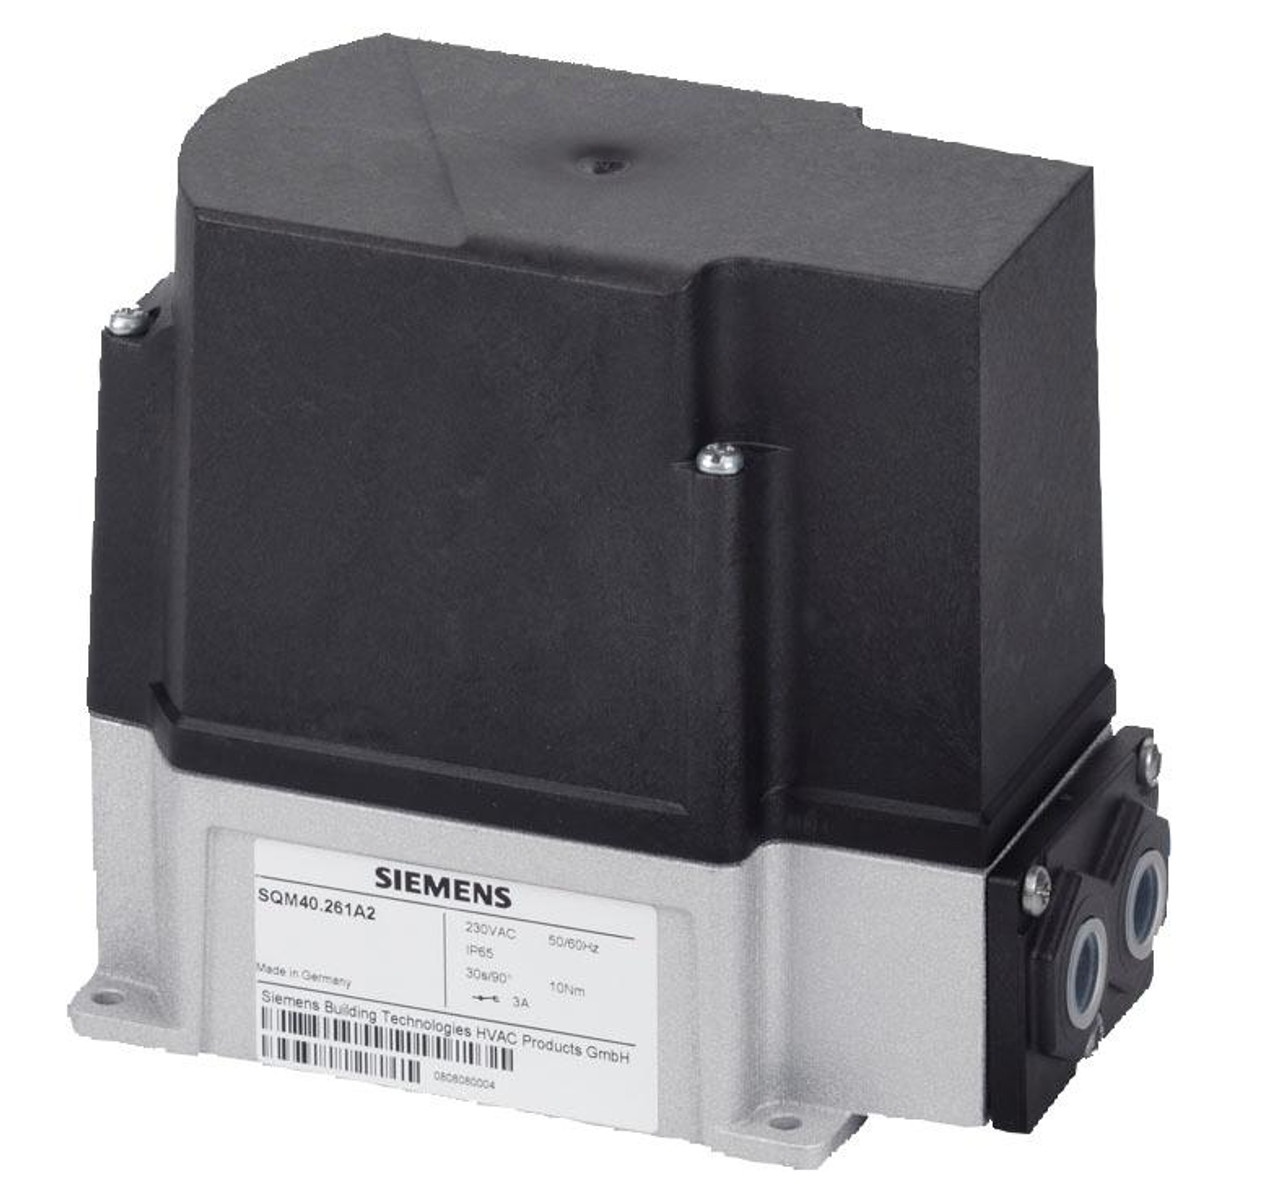 Siemens SQM41.264R11, Actuators for air and gas dampers